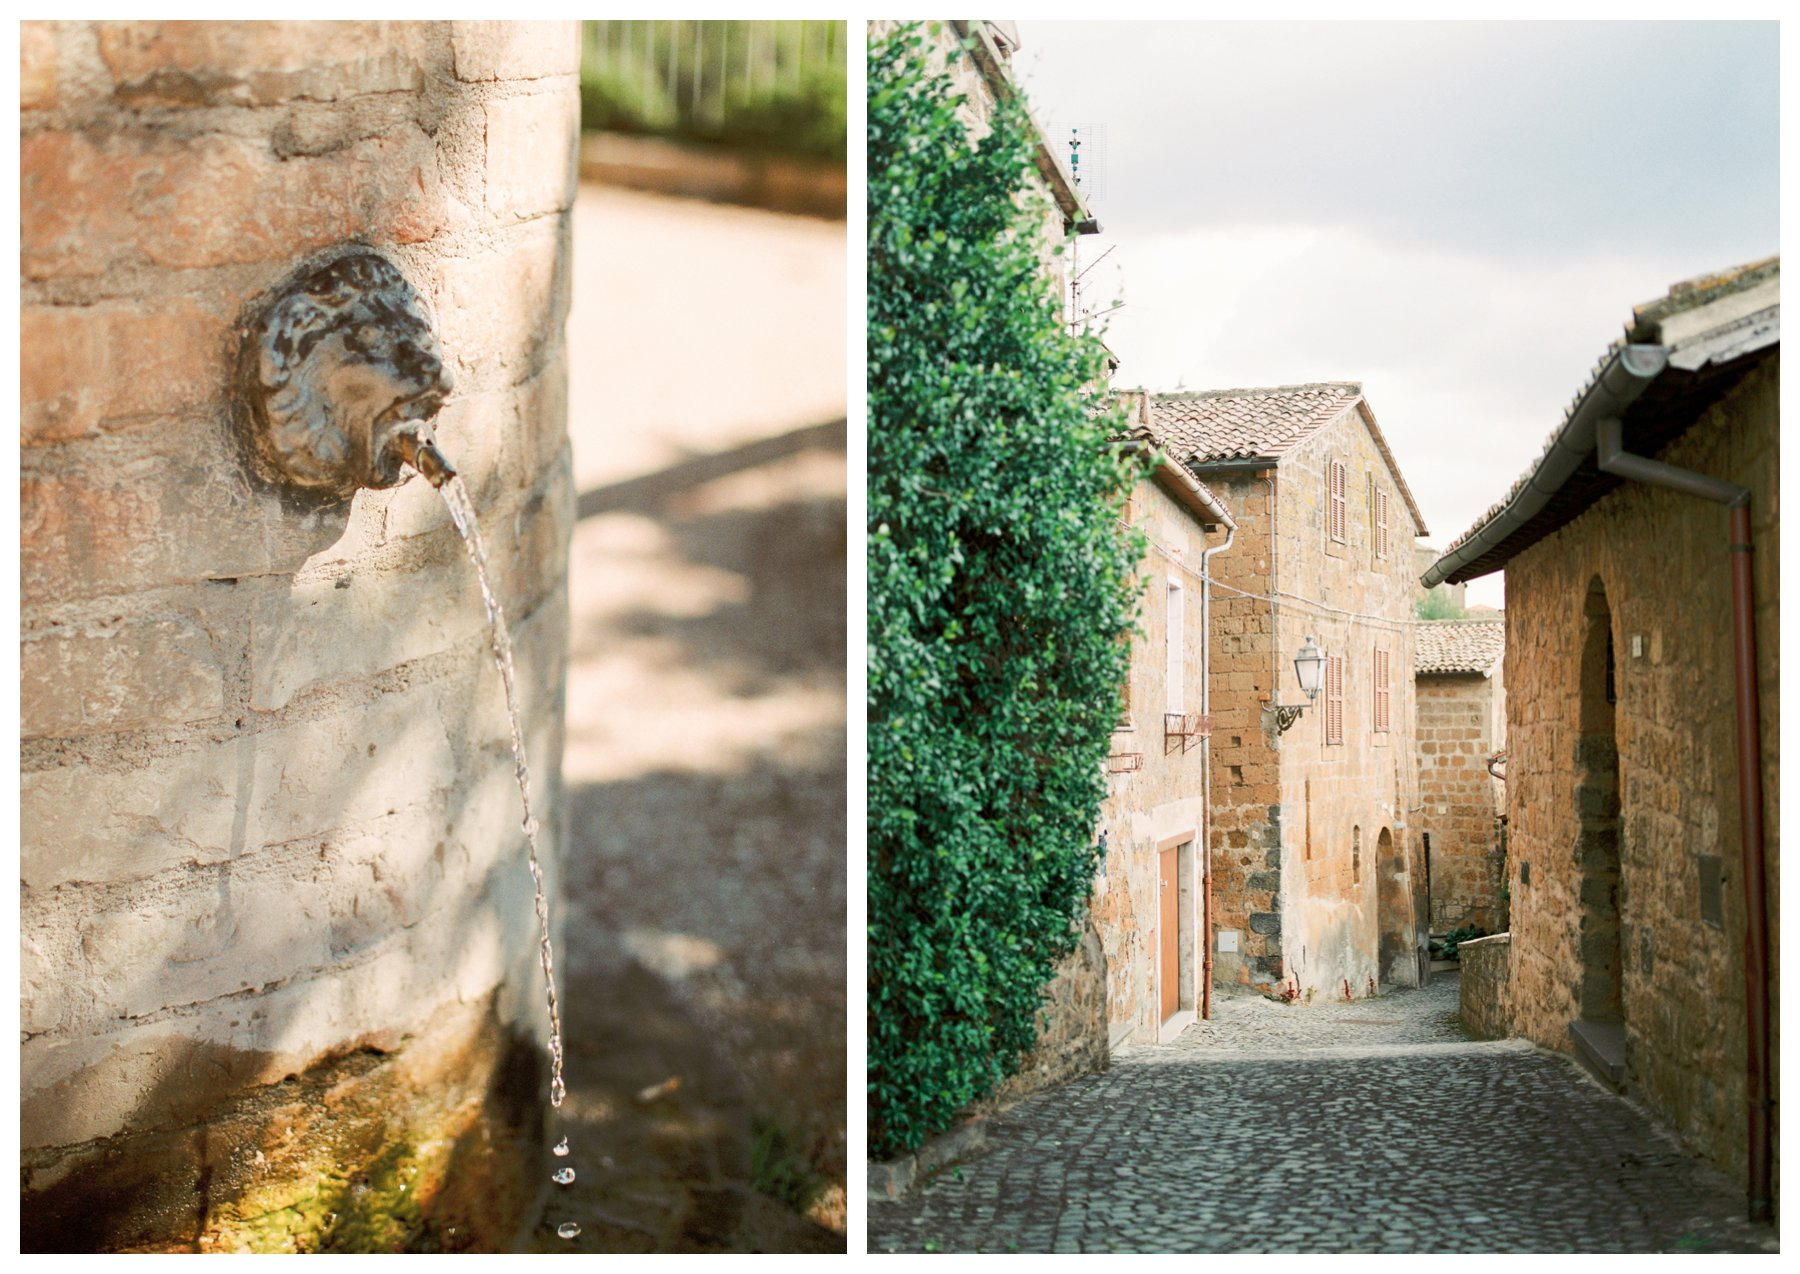 travel photography of the ancient village of Civito in Umbria, Italy